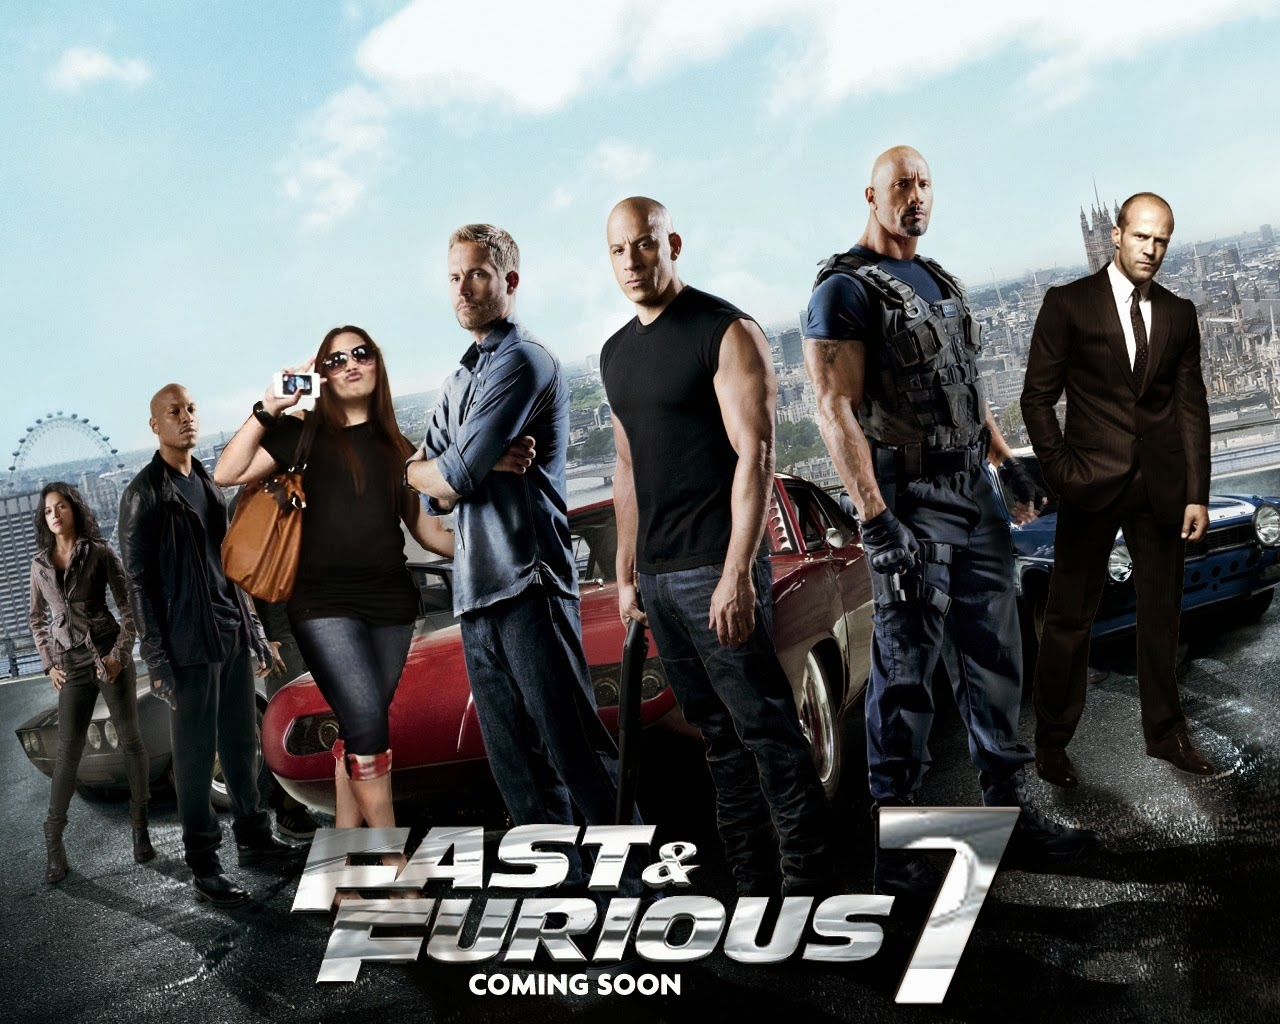 Fast and Furious 7 Posters HD Wallpaper 1280x1024